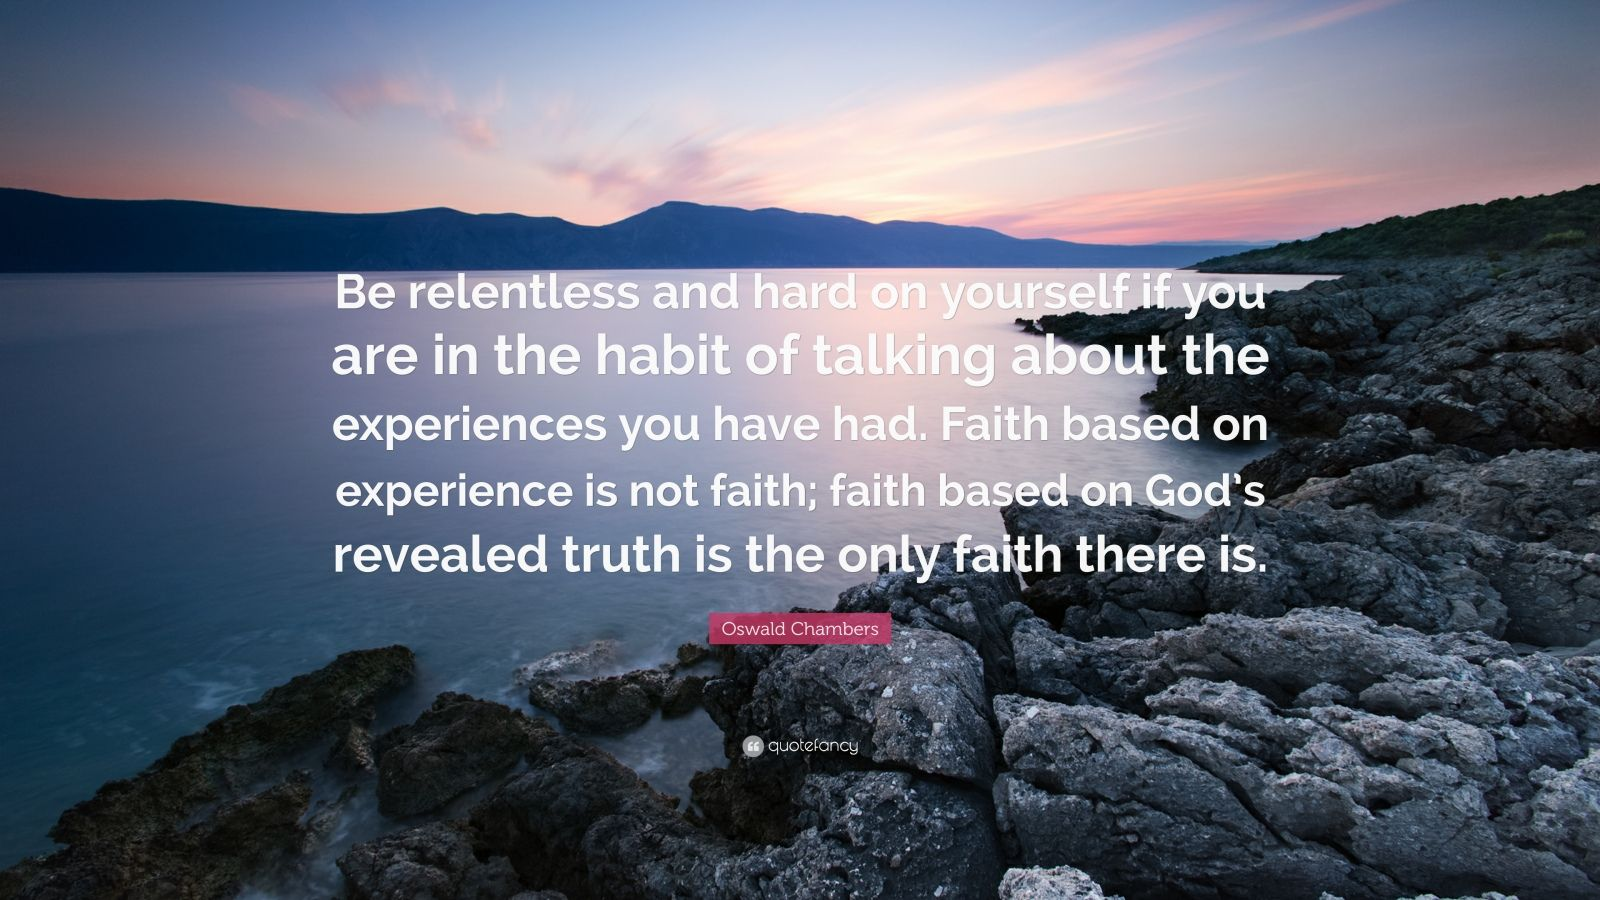 "Oswald Chambers Quote: ""Be relentless and hard on yourself if you are in the habit of talking about the experiences you have had. Faith based on experience is not faith; faith based on God's revealed truth is the only faith there is."""